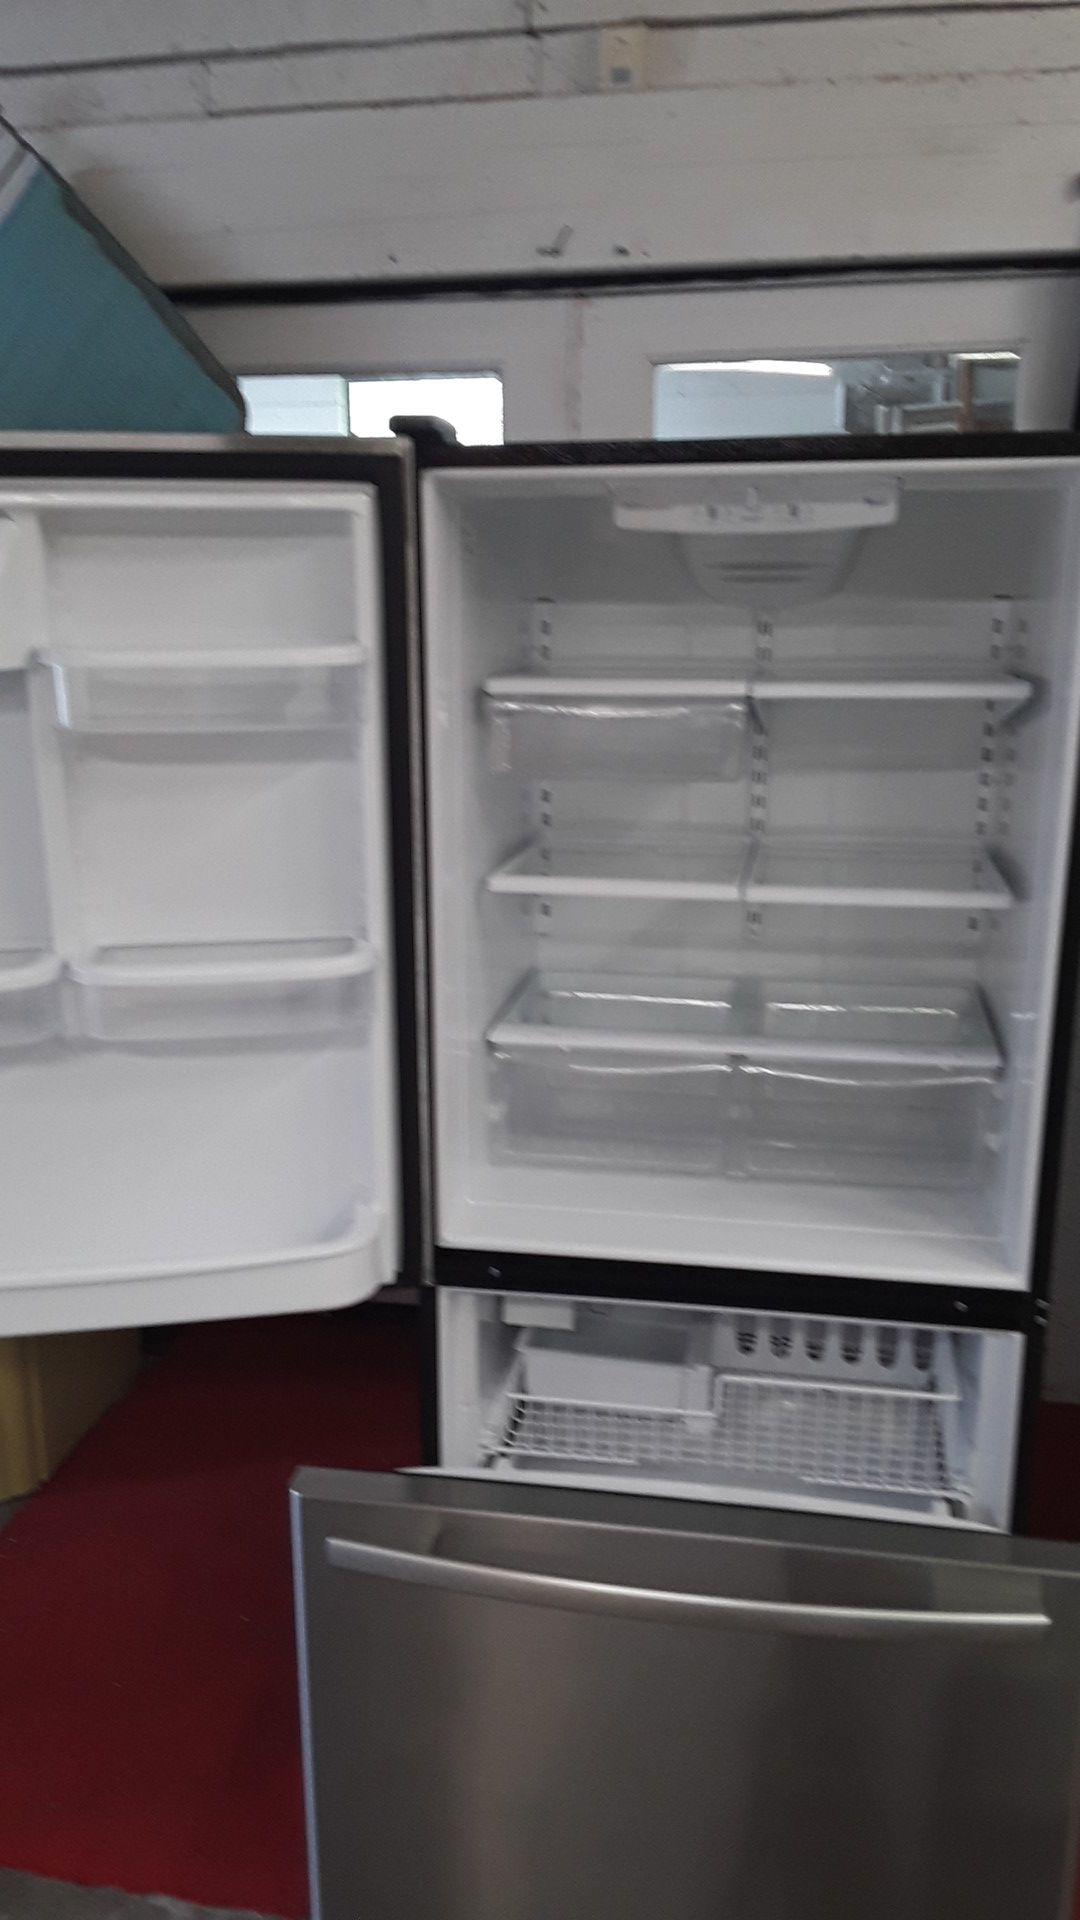 18 cubic foot bottom freezer Whirlpool stainless steel with ice maker